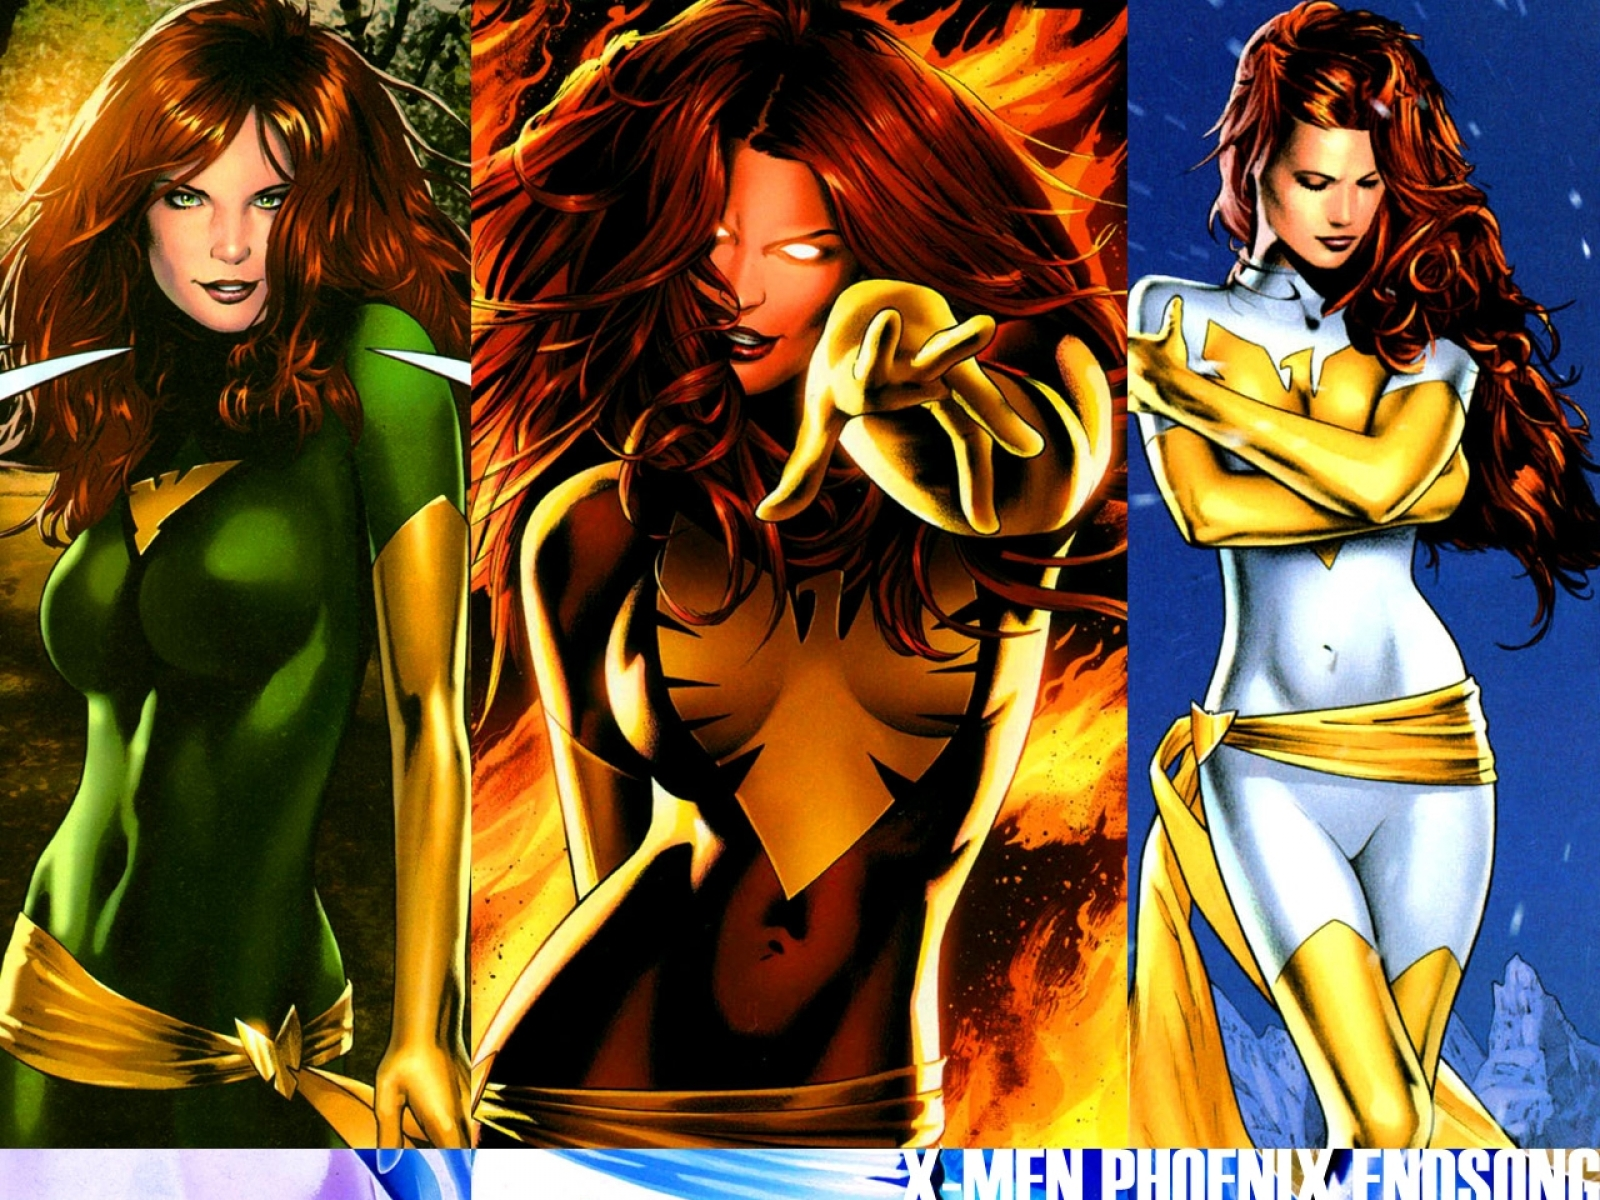 an inclusion of the female character of jean grey in the x men Get to know the new and returning mutants in our x-men apocalypse characters guide on friday, may 27, the current era of x-men films that began with x-men: first class will come to an end with the release of x-men: apocalypse and for the very first time, one of the x-men's greatest foes.